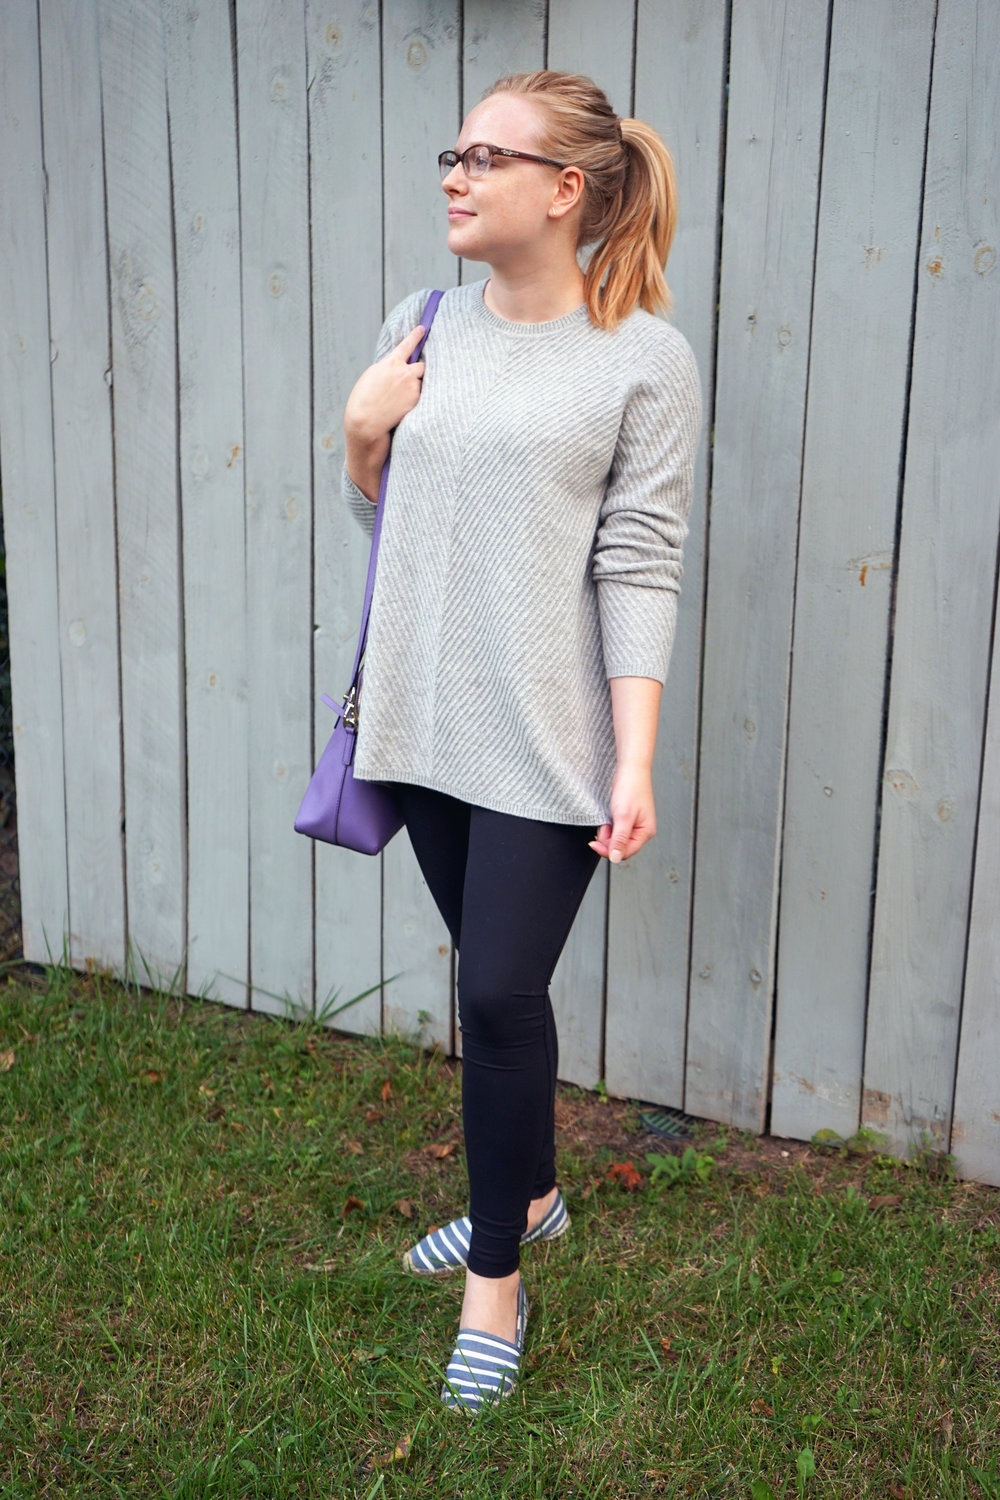 Maggie a la Mode - Nordstrom Signature Collection Chevron Cashmere Sweater, Zella Live-In High Waist Leggings, Soludos Classic Striped Espadrilles, Kate Spade Cedar Street Maise Satchel